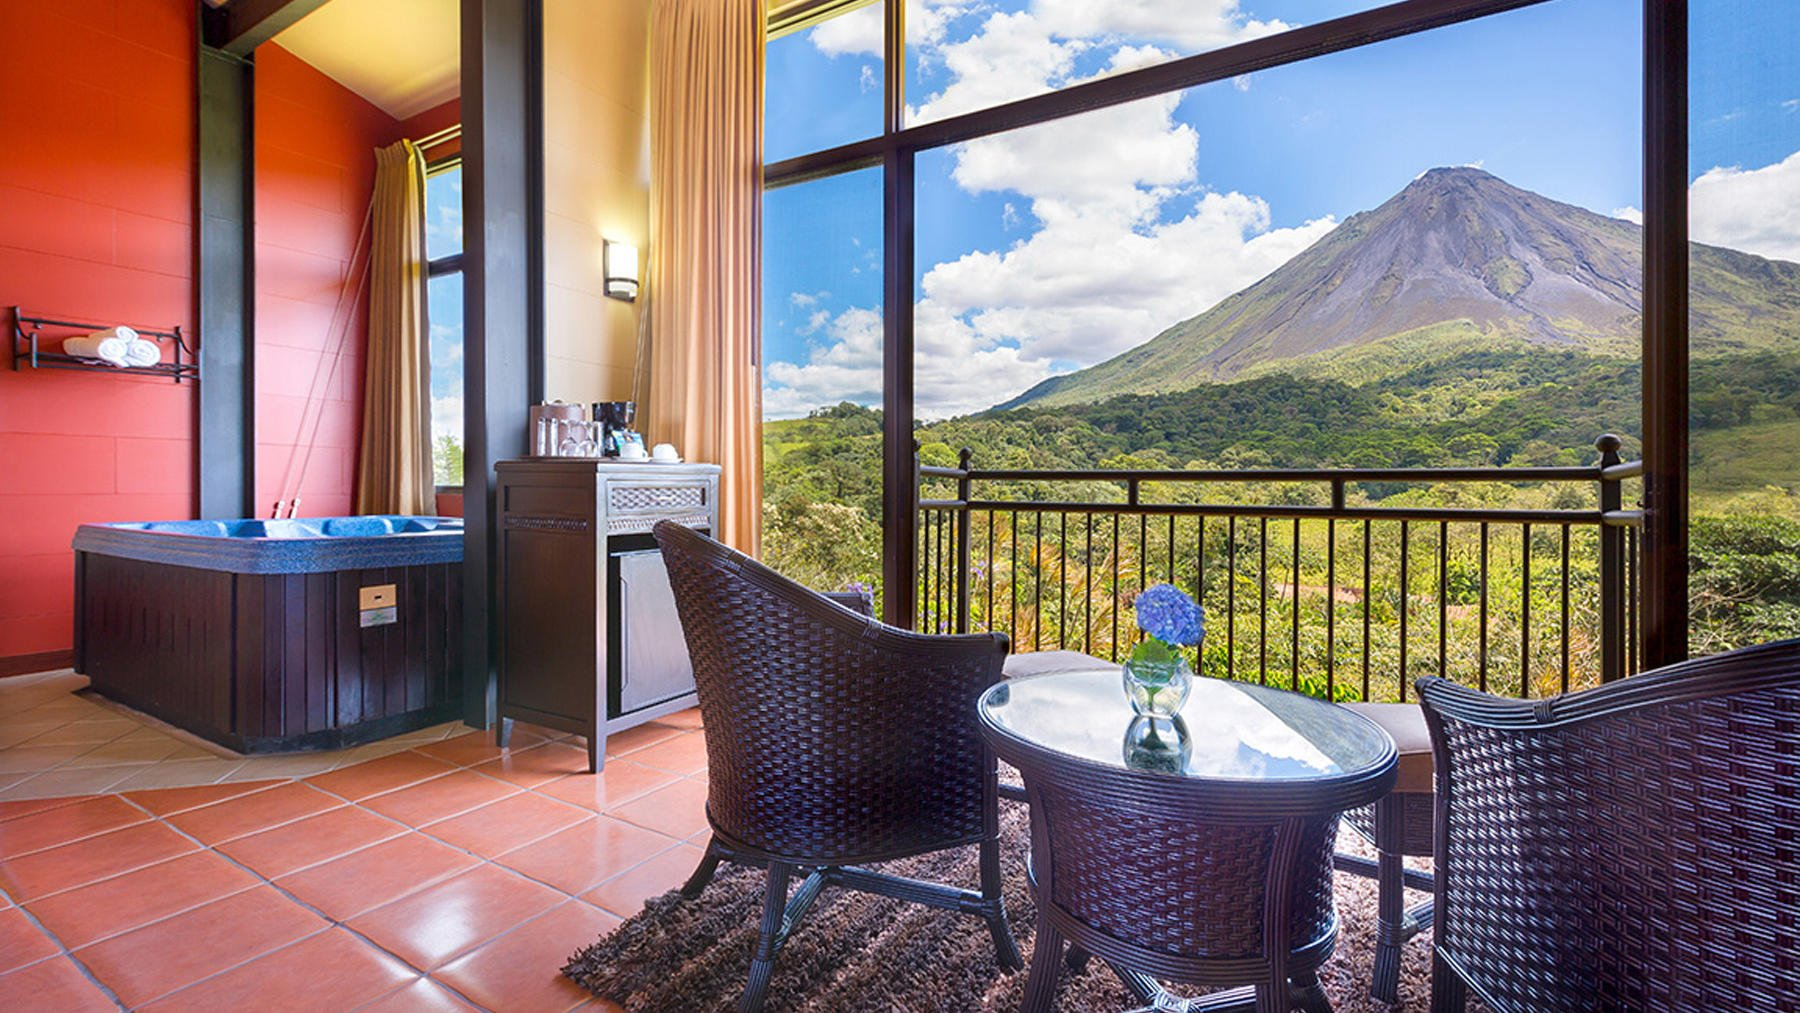 Jacuzzi with view of Volcano